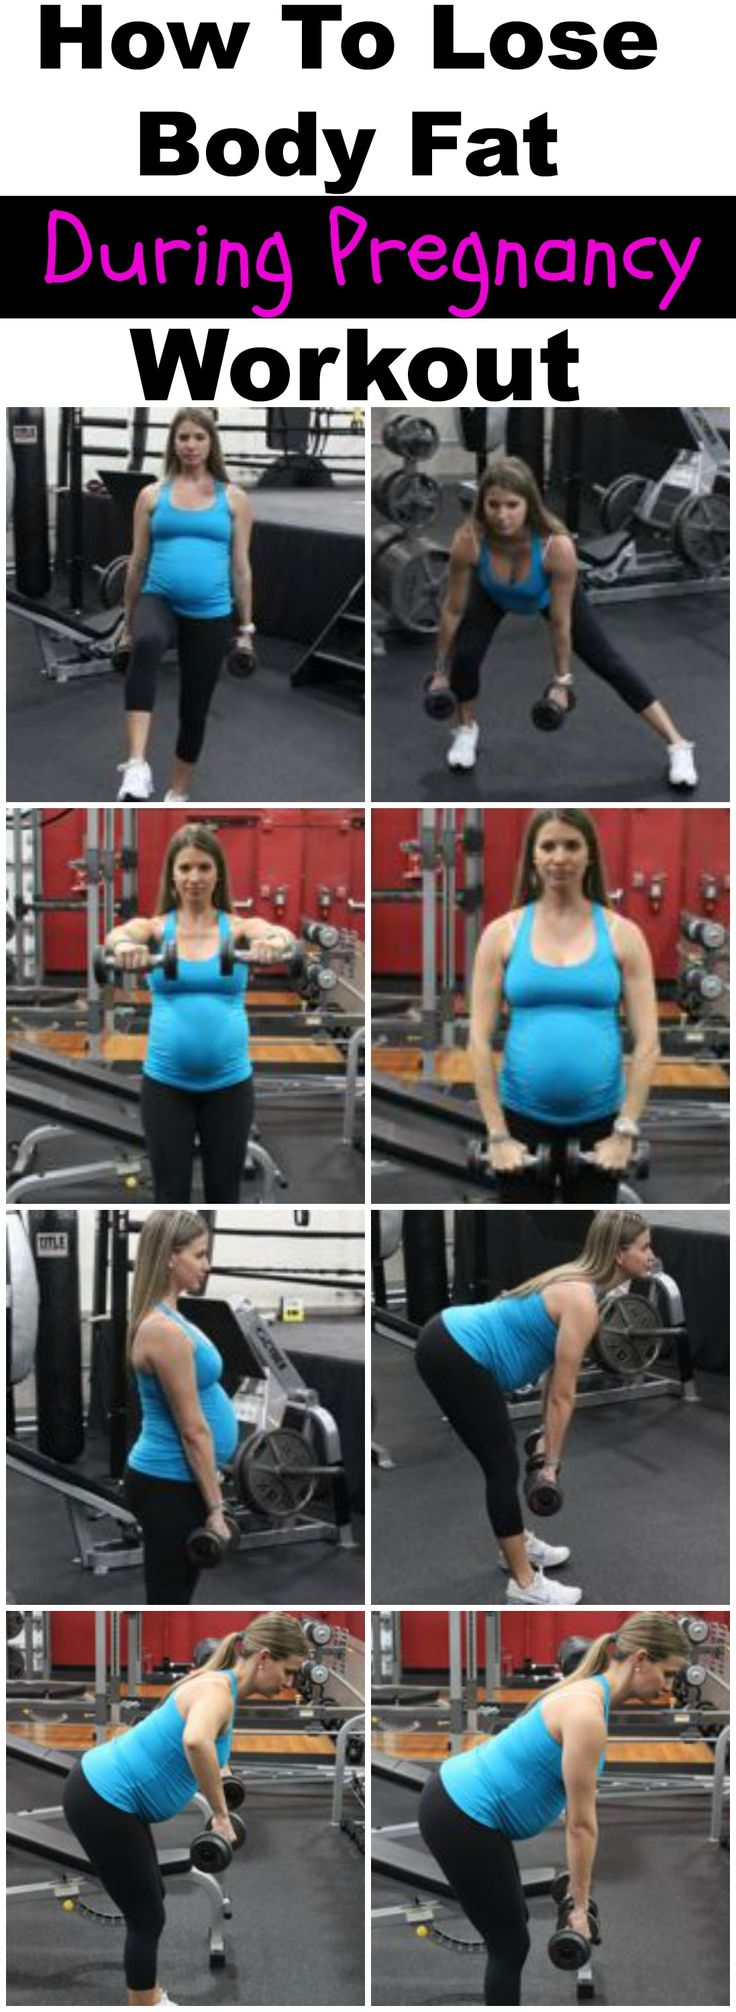 How to lose body fat during pregnancy and get toned.   Workout at home included.  Pregnancy safe.